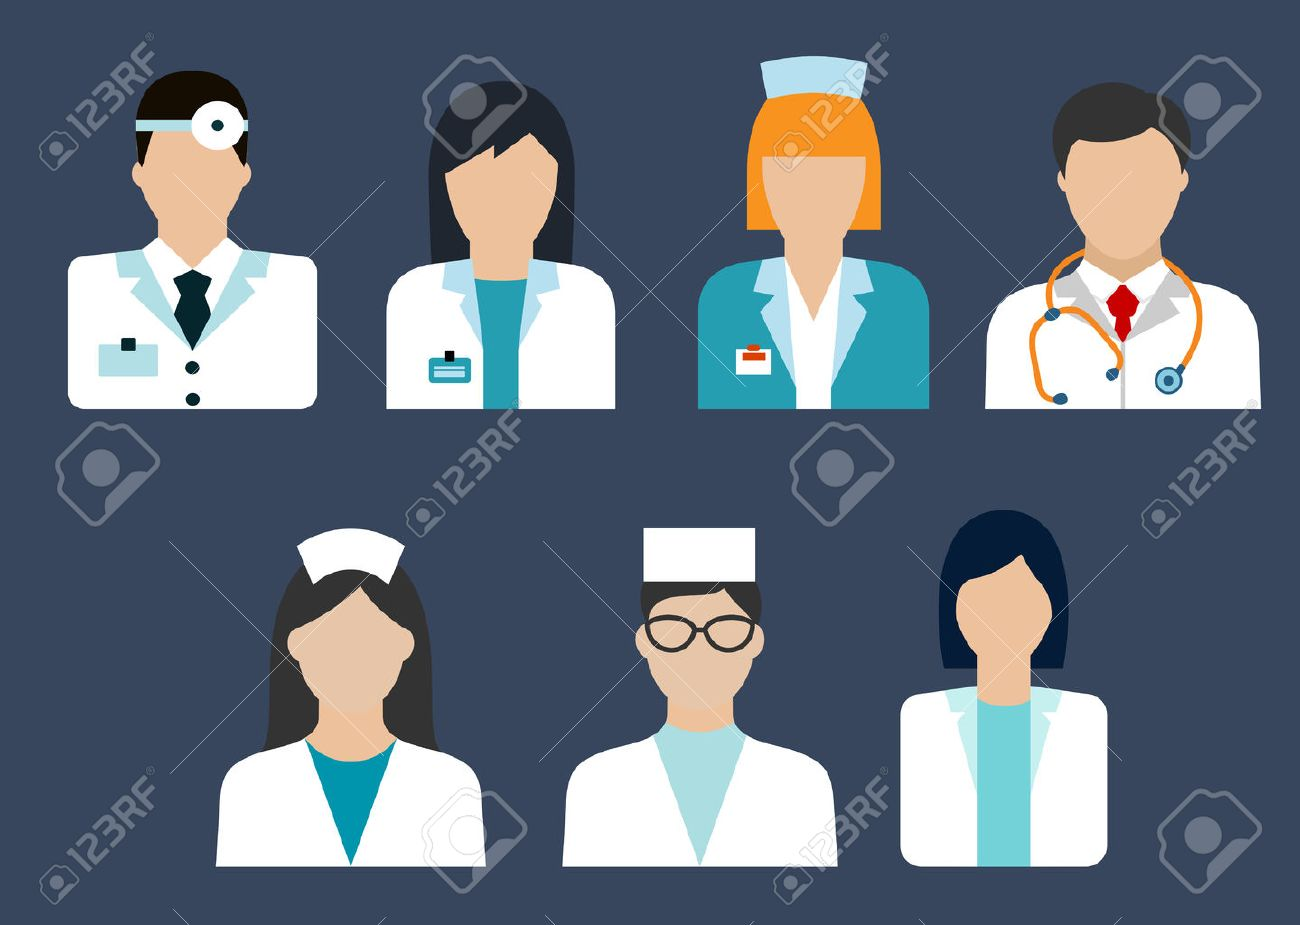 Flat icons of medical professions with doctor, therapist, surgeon, dentist, pharmacist and nurse avatars - 48314464